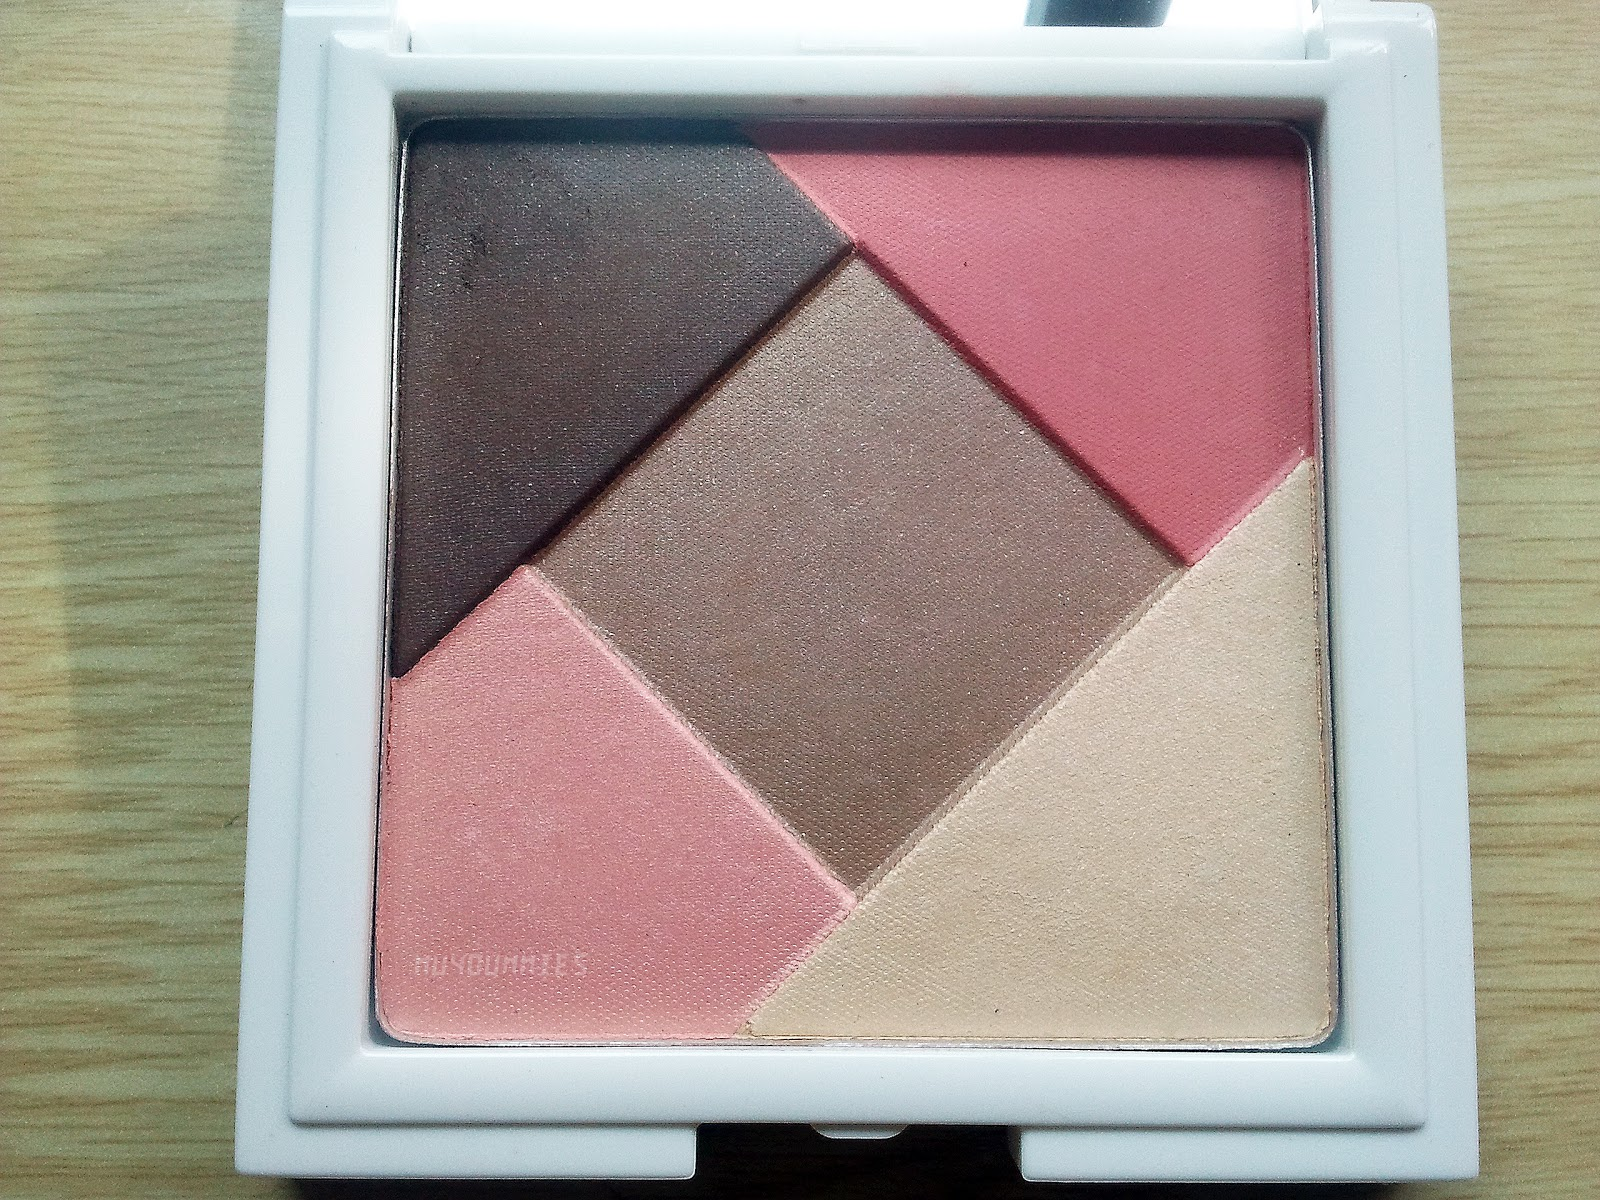 Make-up for dummies: October 2012 - photo#36